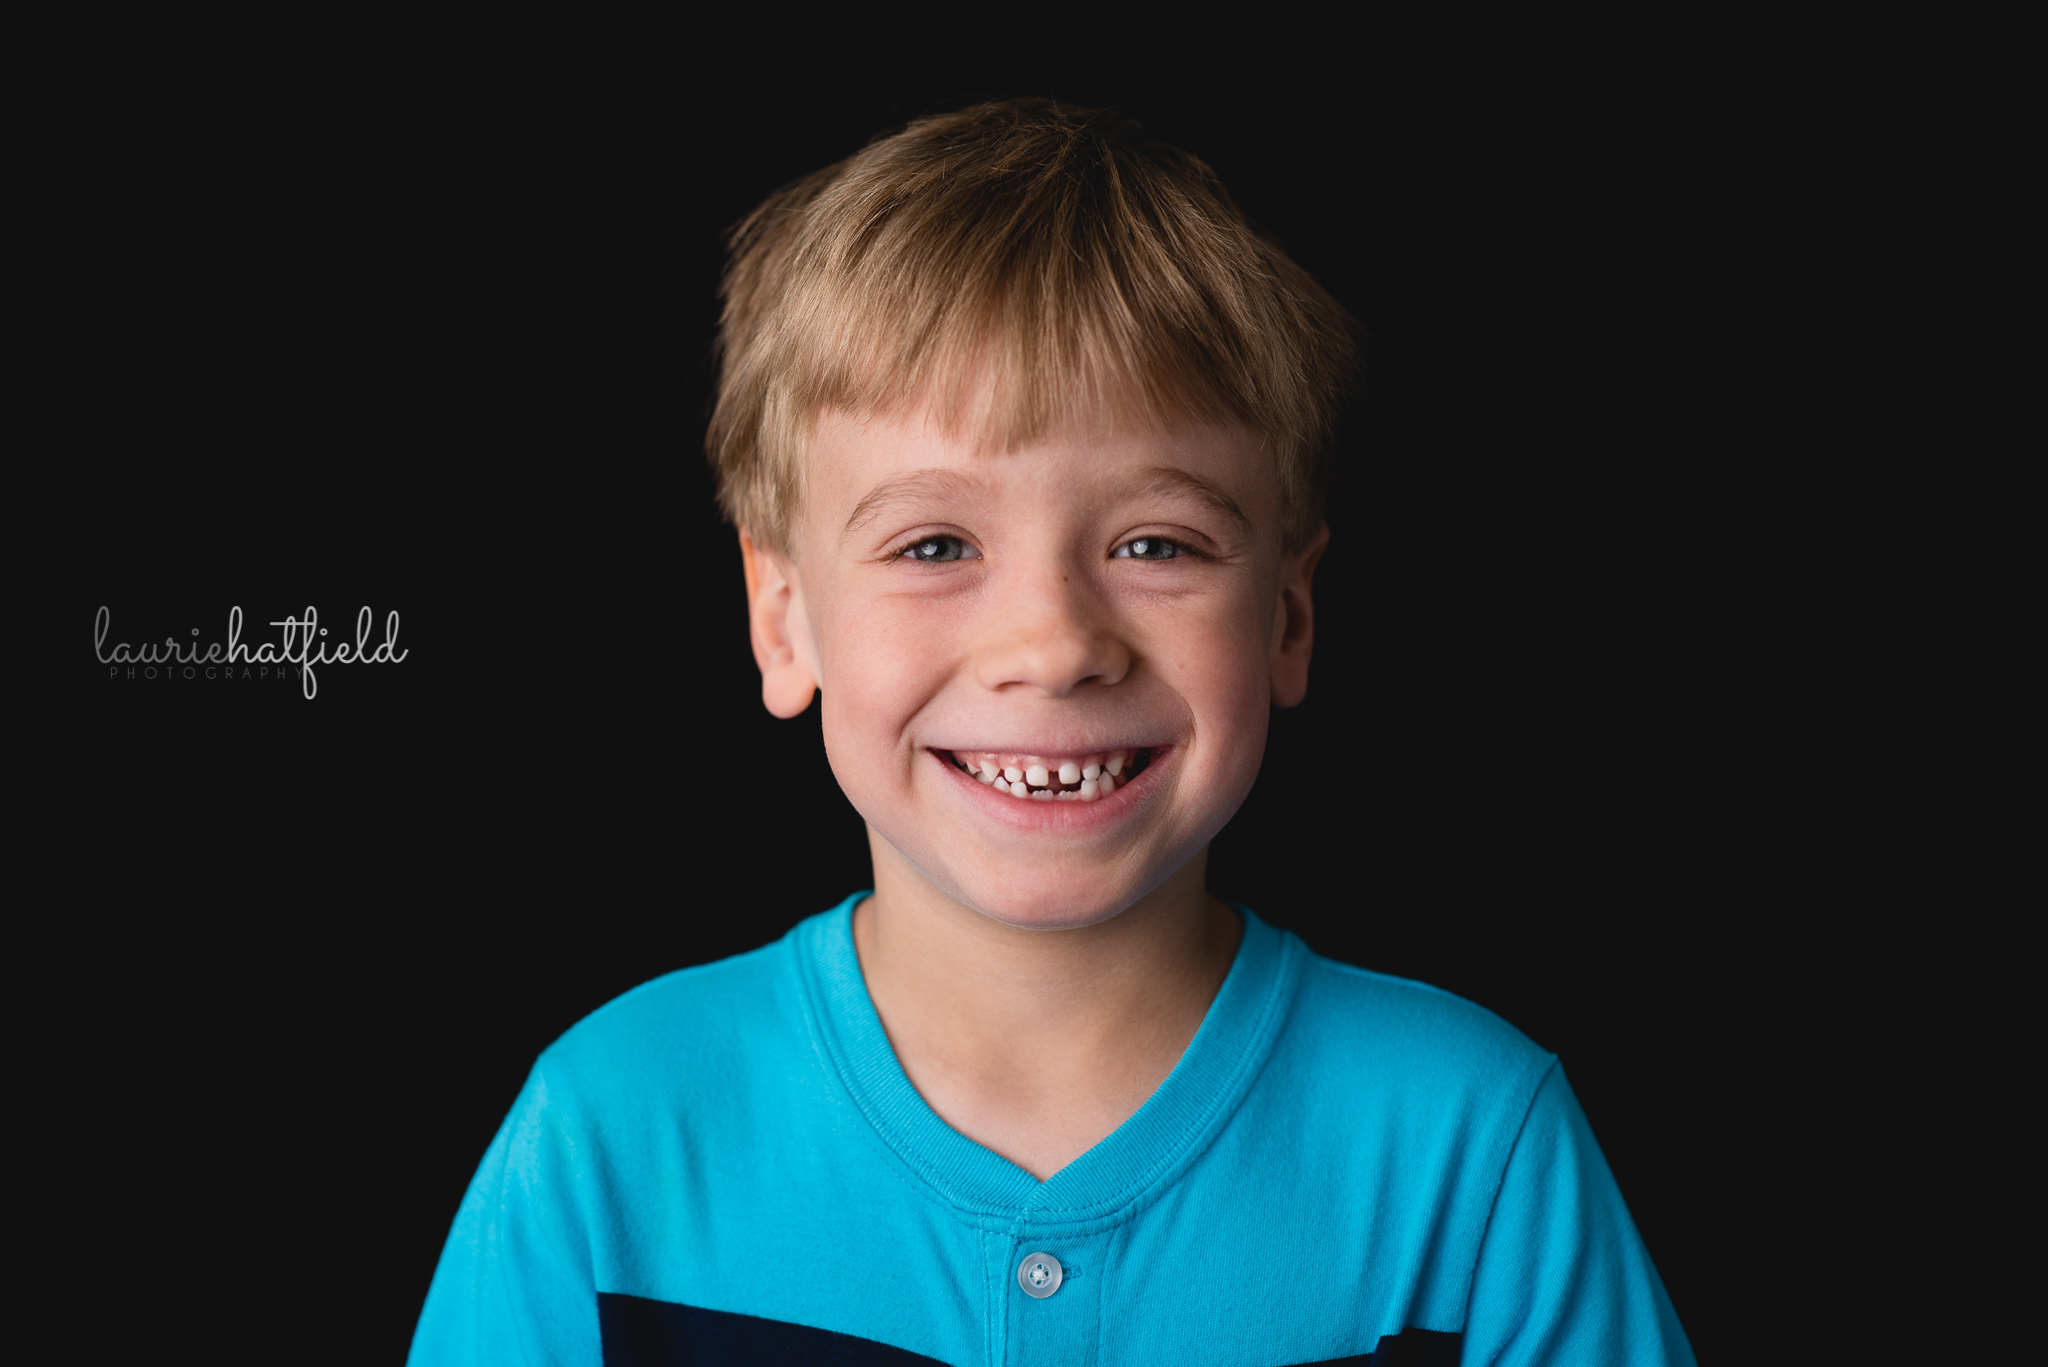 3-year-old boy with blond hair | Pensacola FL school photographer